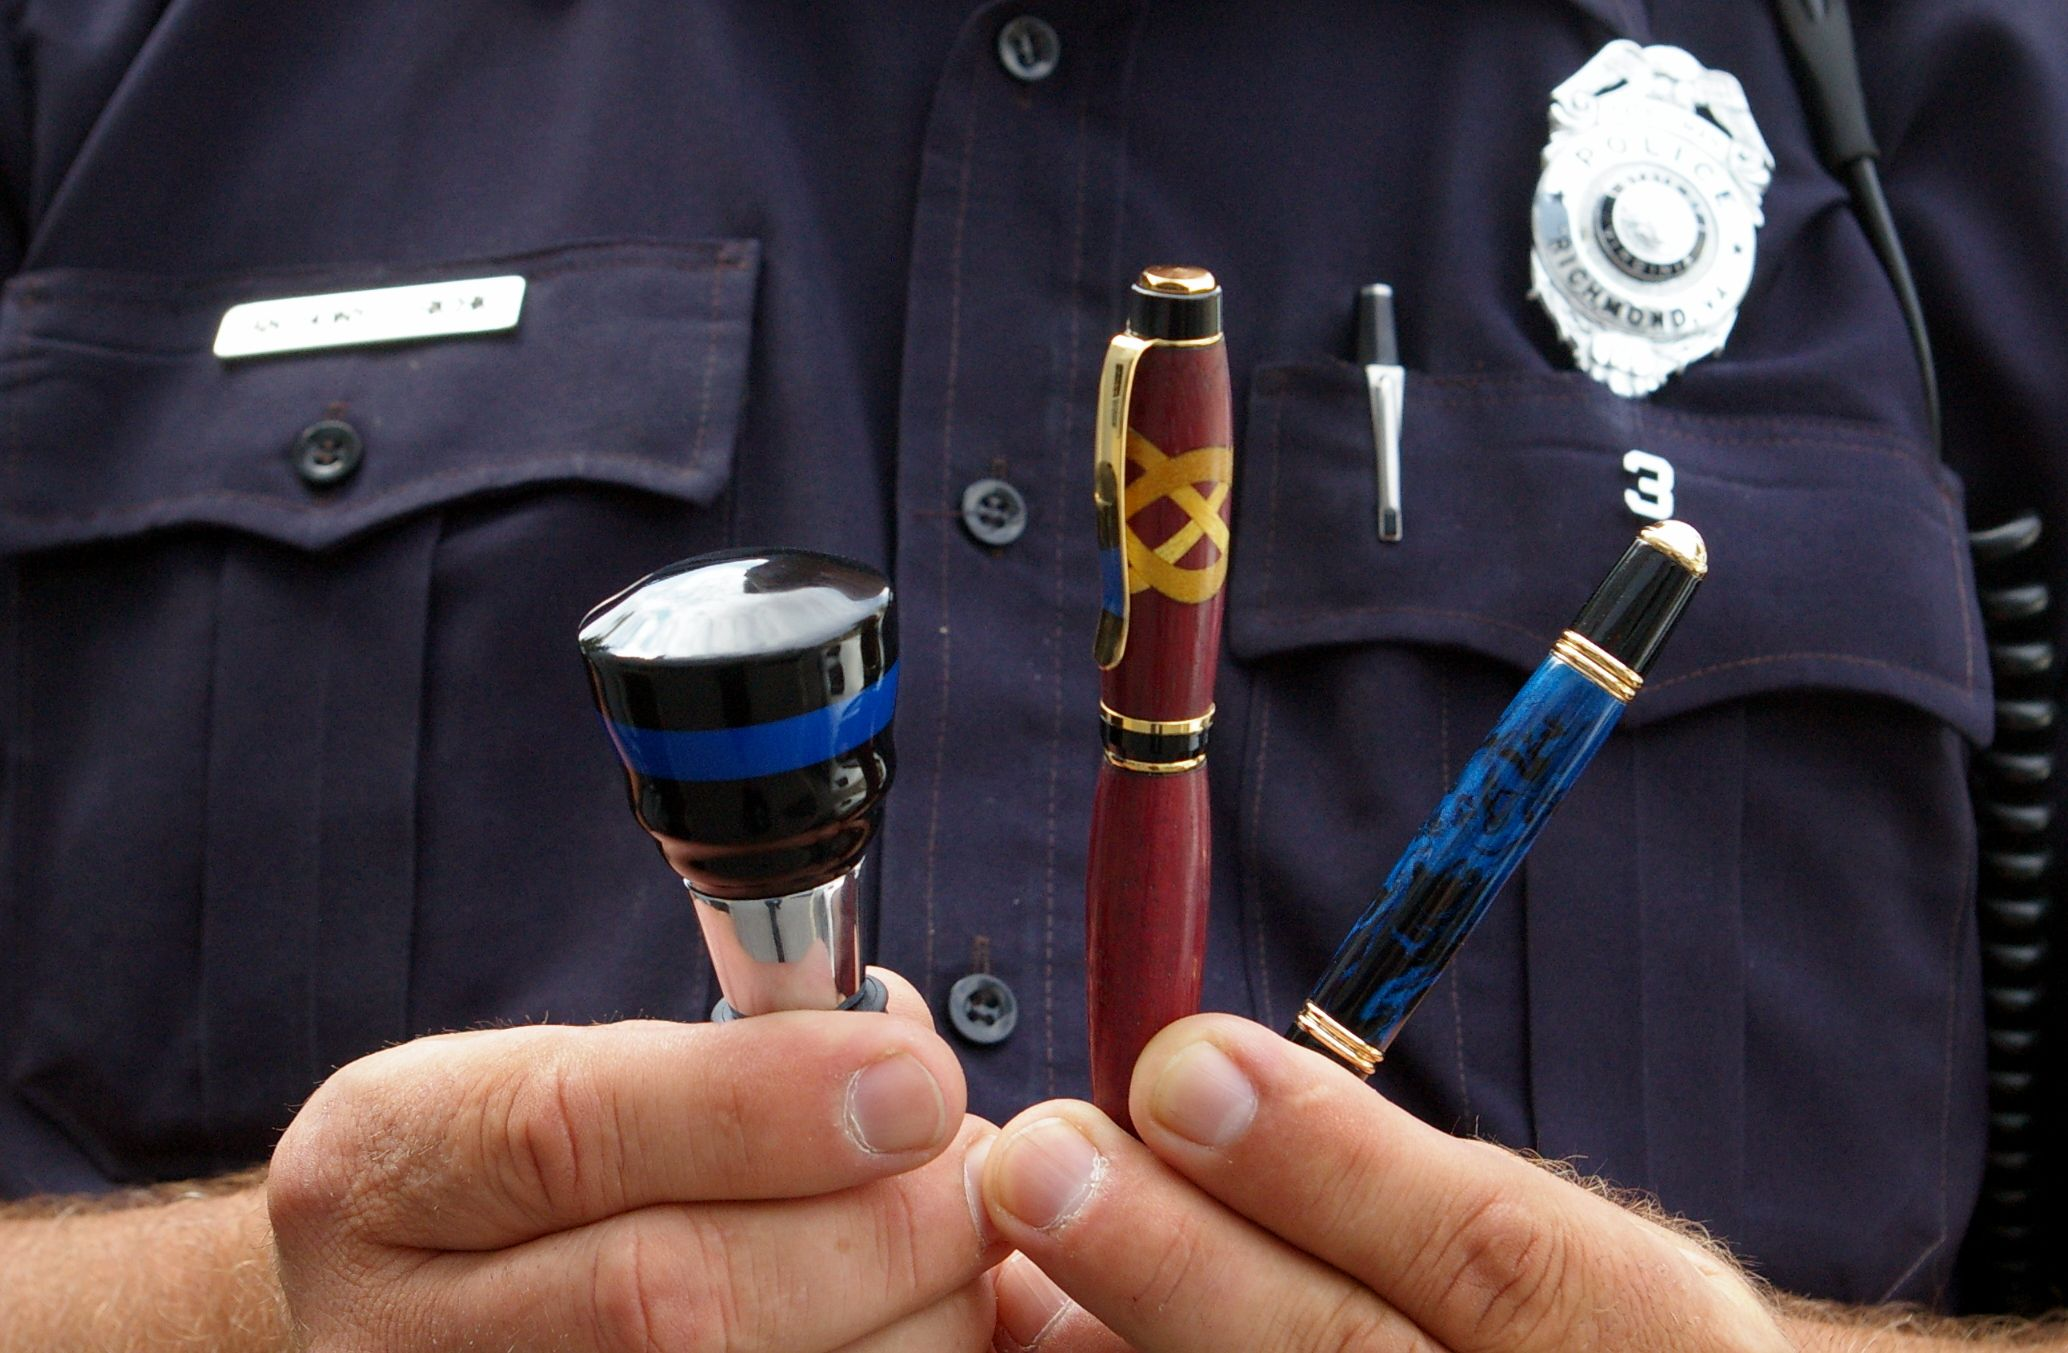 Officer Anthony Richio has been workworking for years as a hobby, but he recently challenged himself to make pens and wine bottle stoppers, among other things. Check out this link to see how he combined that passion with his day job as an RPD officer: